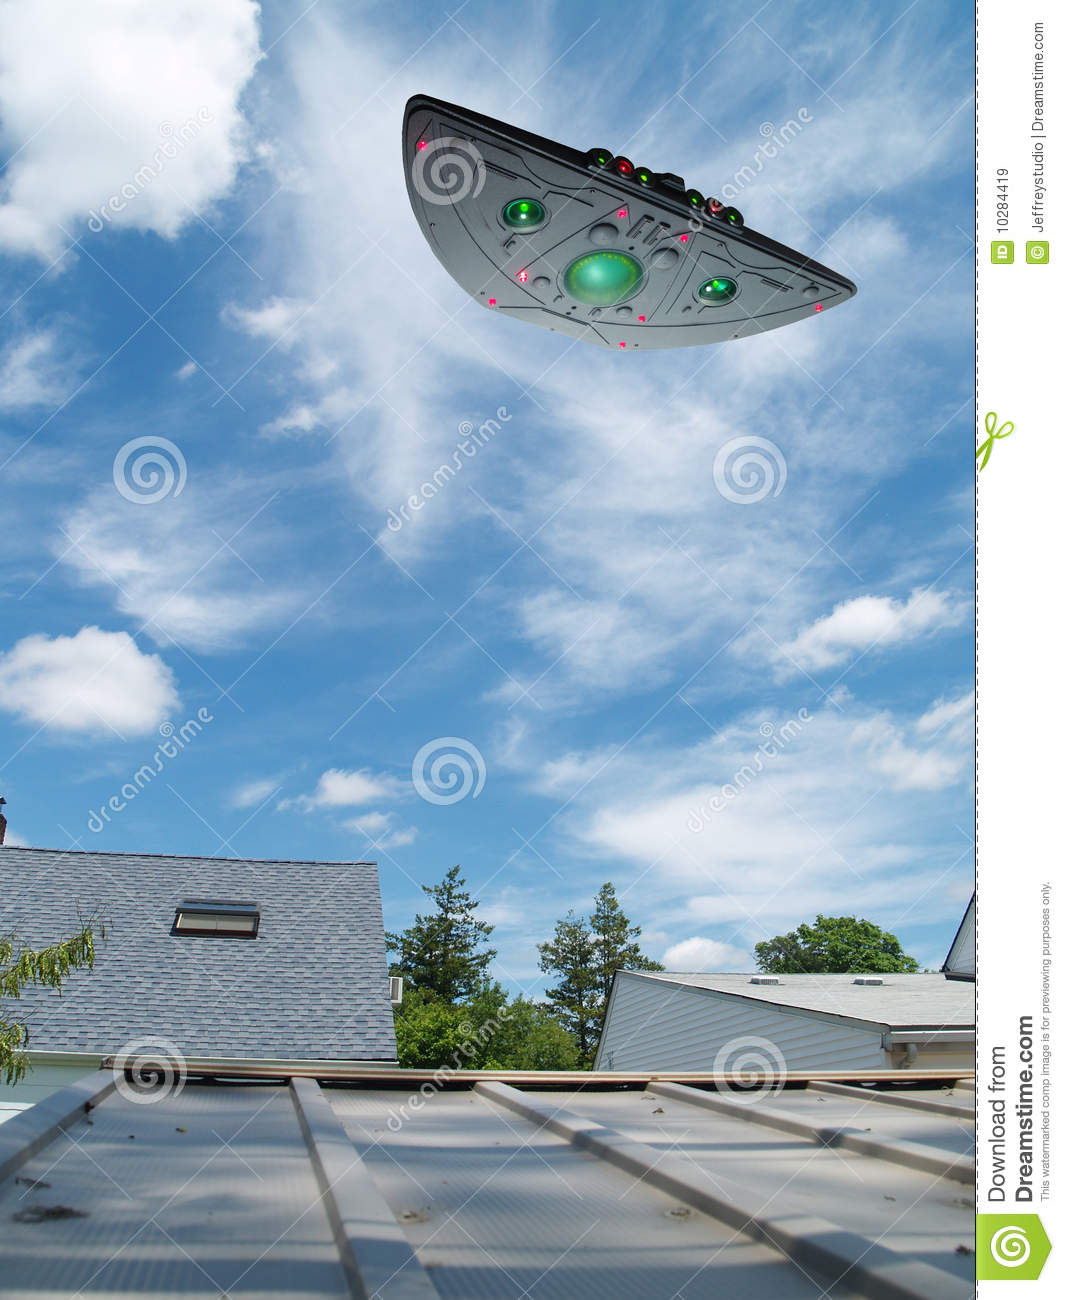 8/15/2014 MASS SIGHTINGS OF A LARGE UFO CRAFT OVER TEXAS CONFIRMED ...